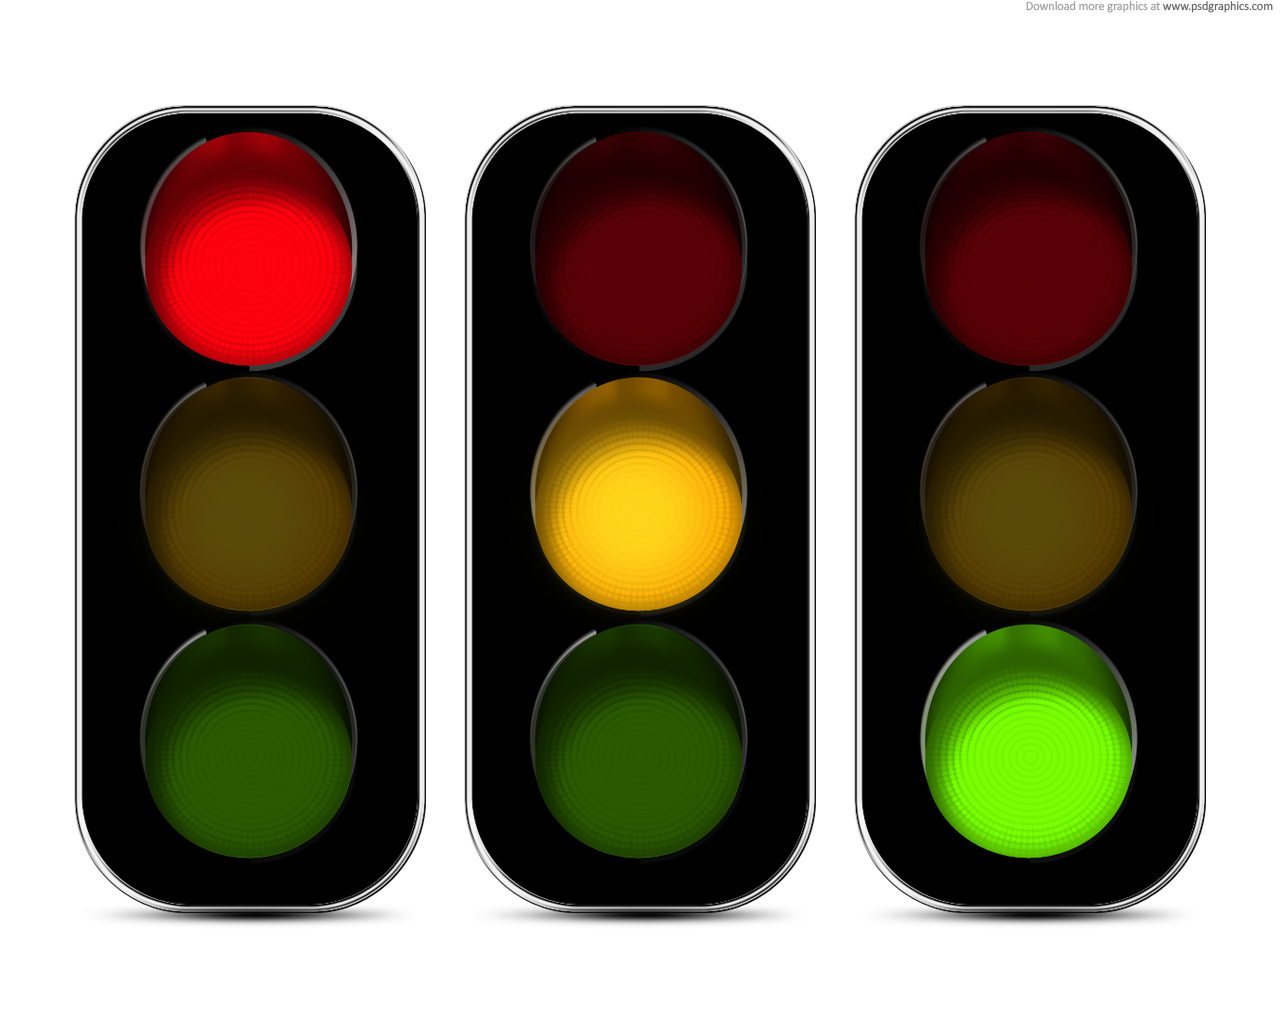 Free Traffic Light Pictures, Download Free Clip Art, Free.